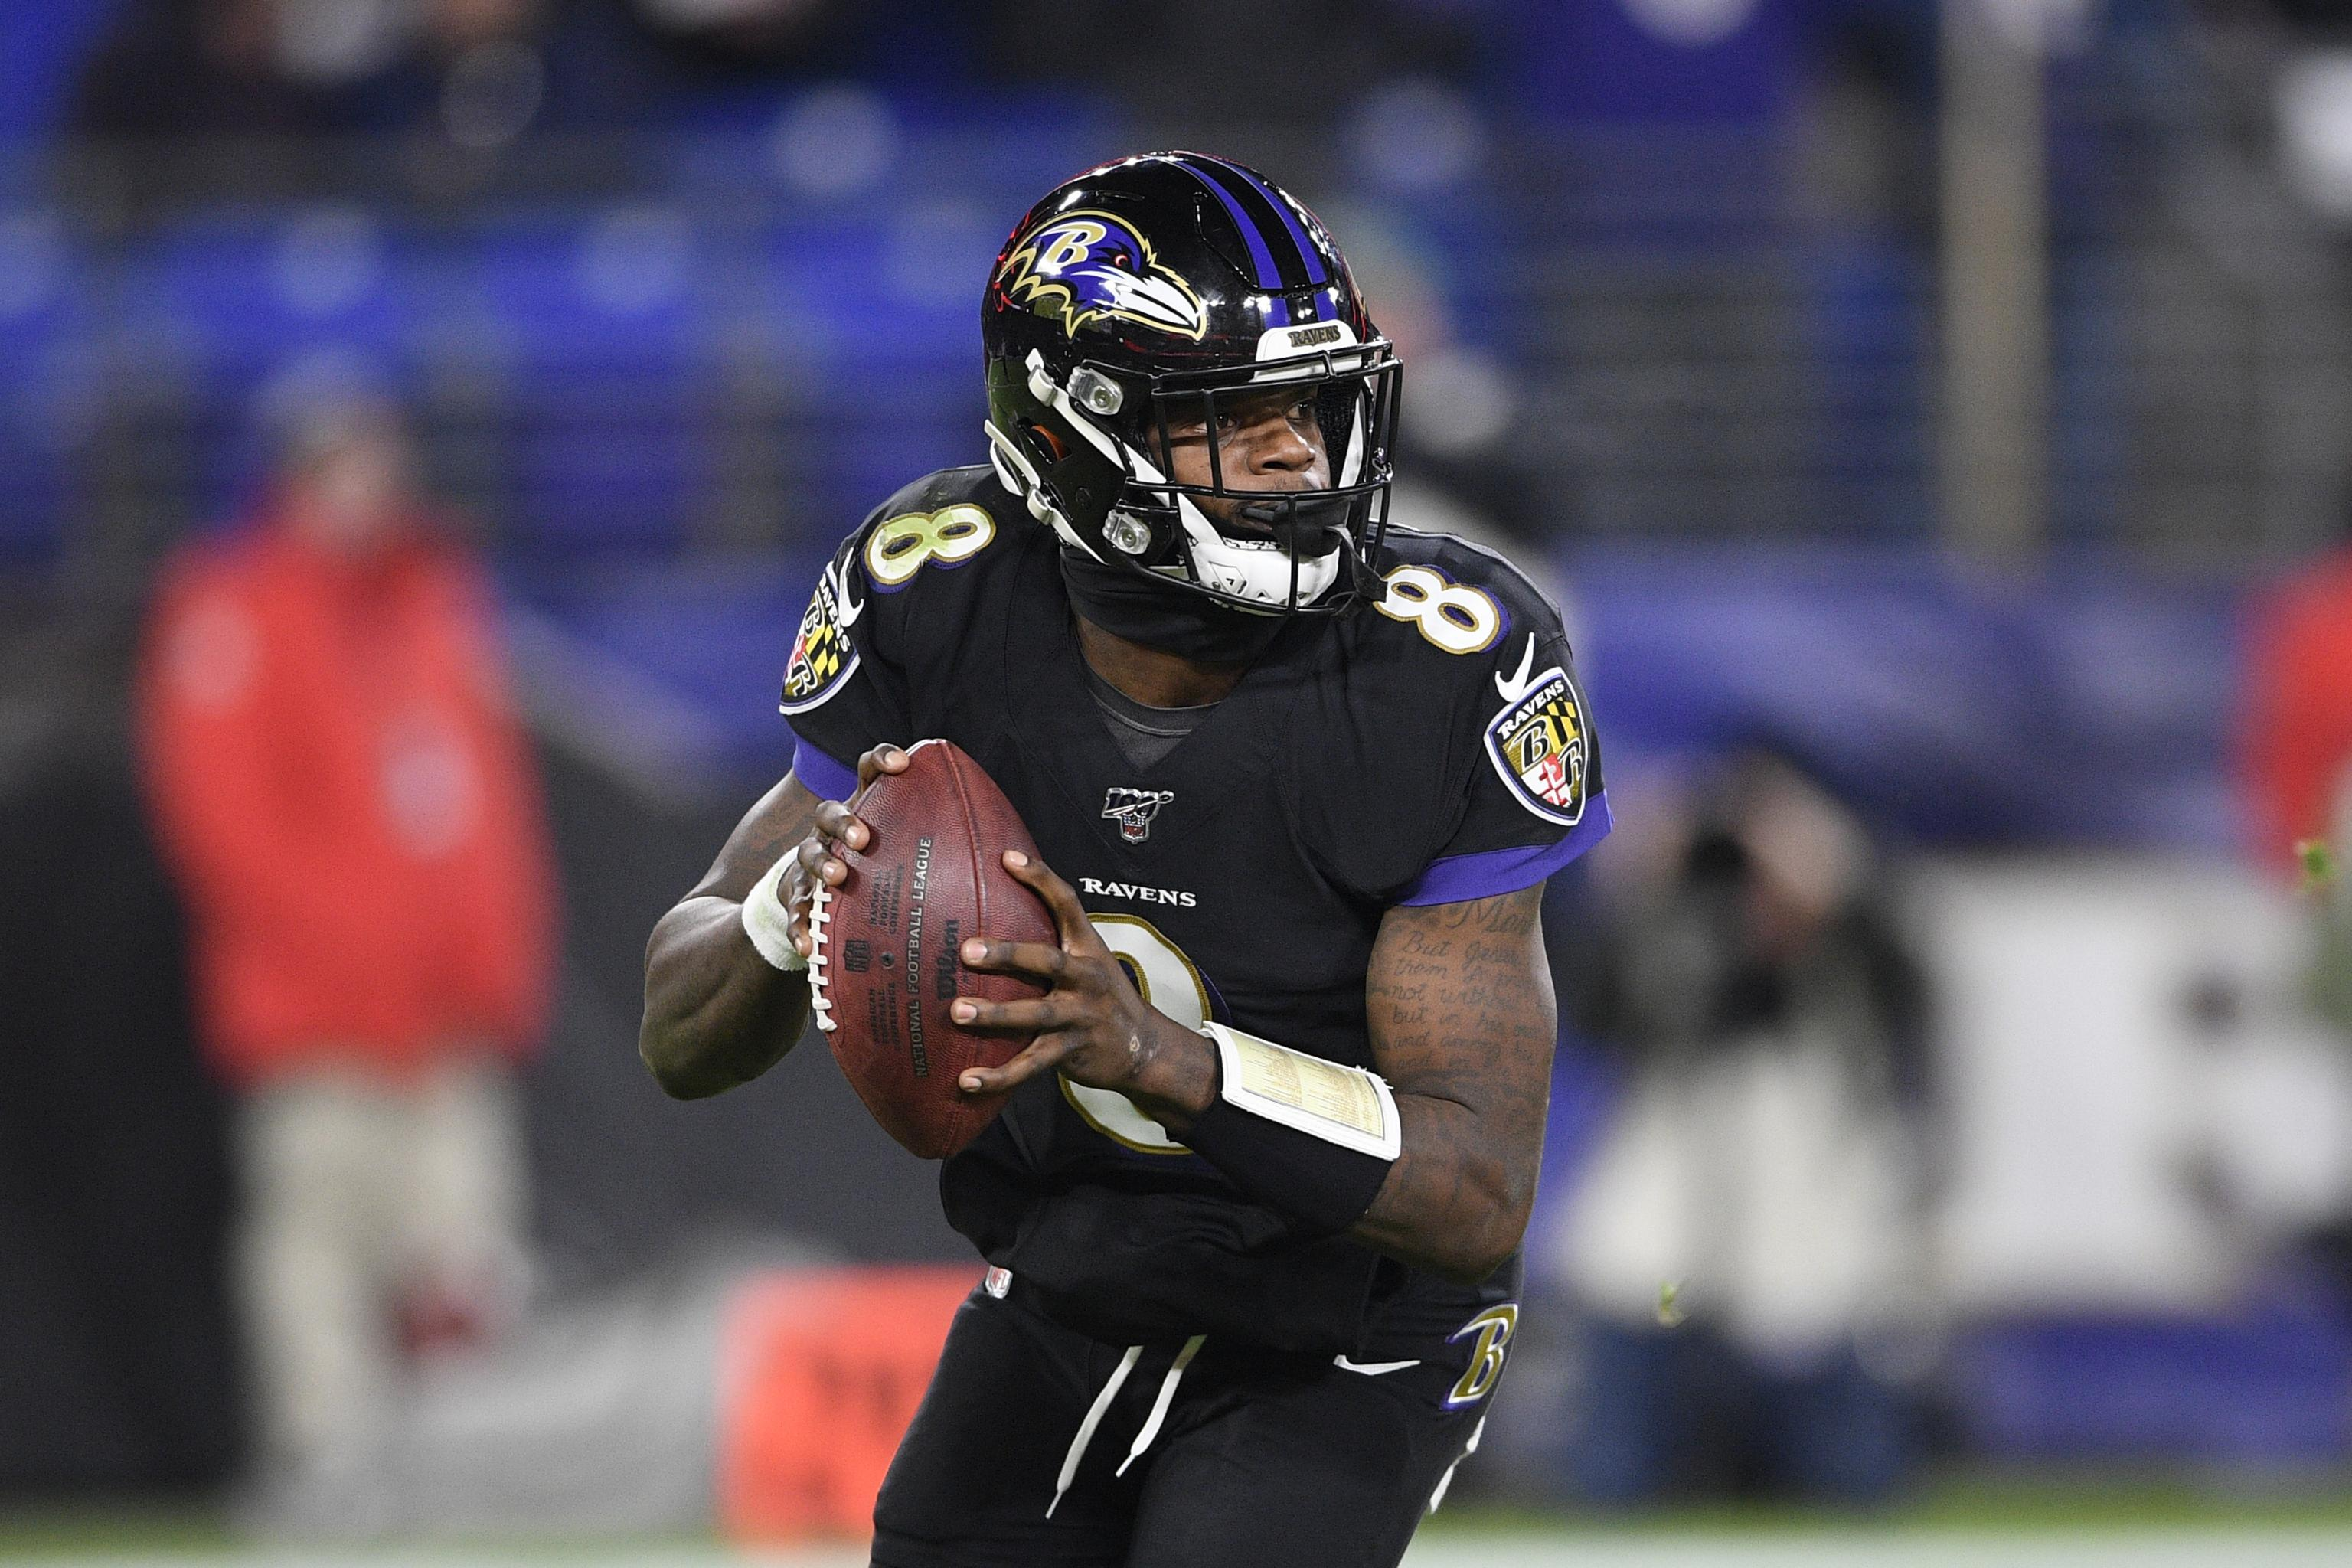 Nfl Scores Week 15 Results Playoff Picture And Top Fantasy Performances Bleacher Report Latest News Videos And Highlights